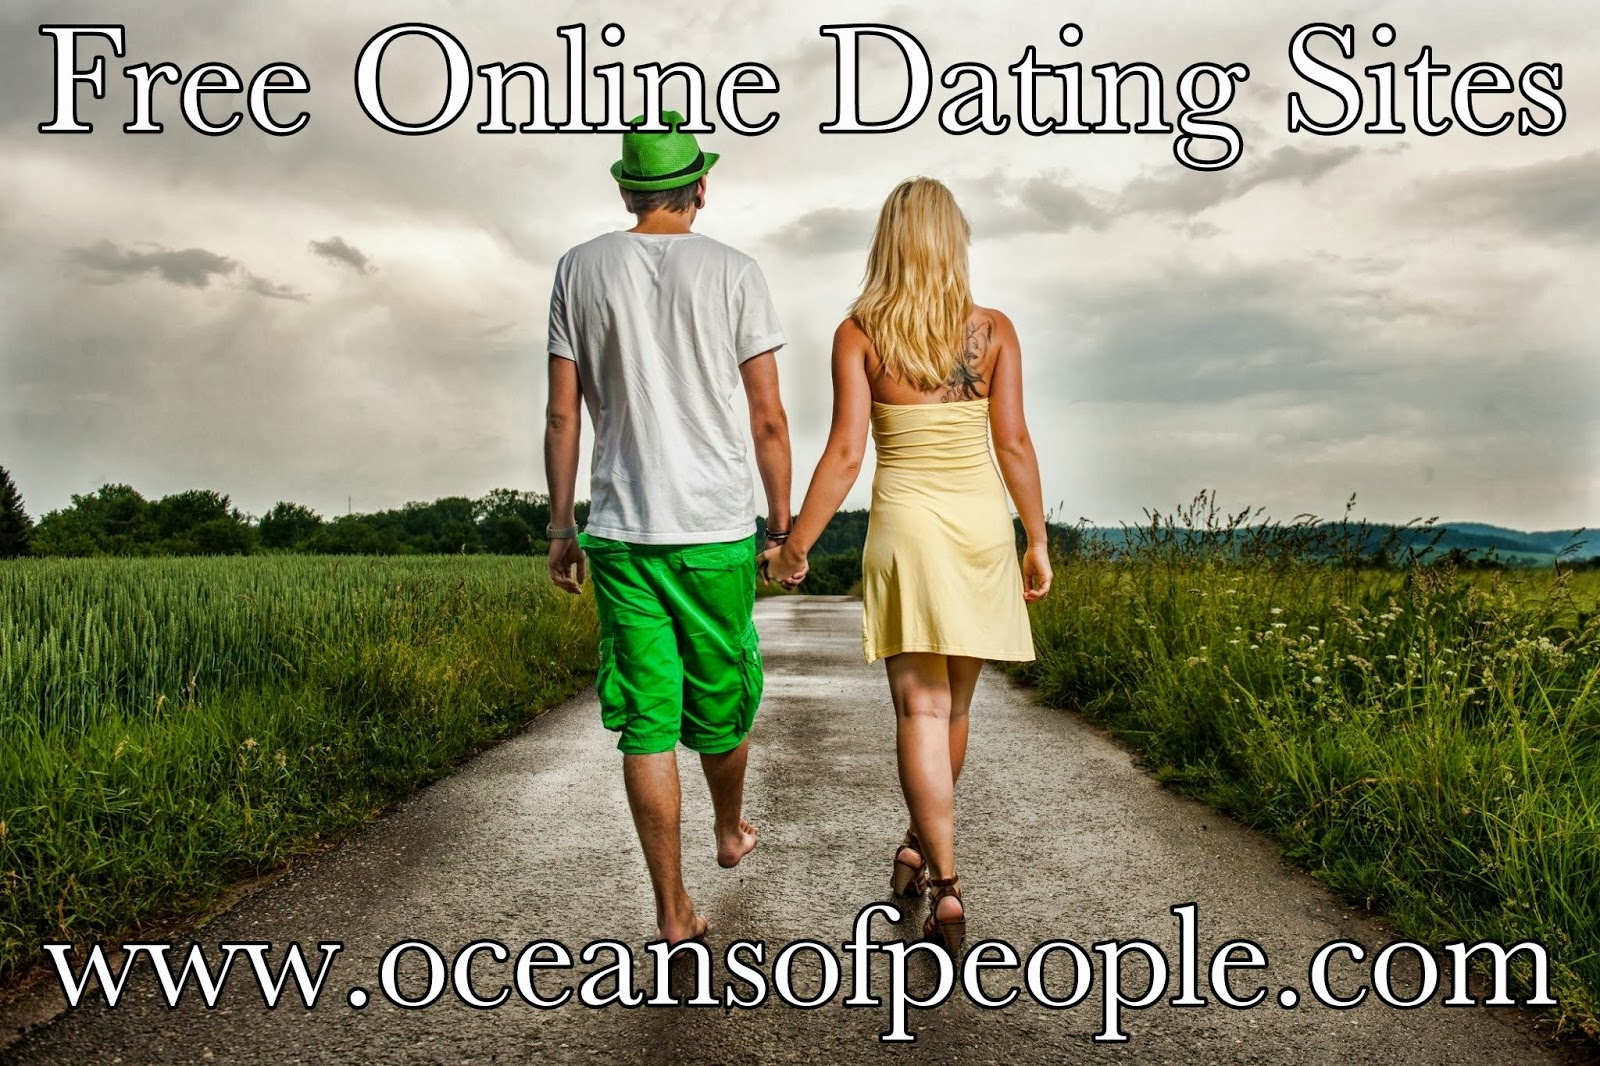 100% free online dating in ankang Aimer world is free online dating site malta, totally free malta dating site malta singles & personals 100% free dating site in malta.